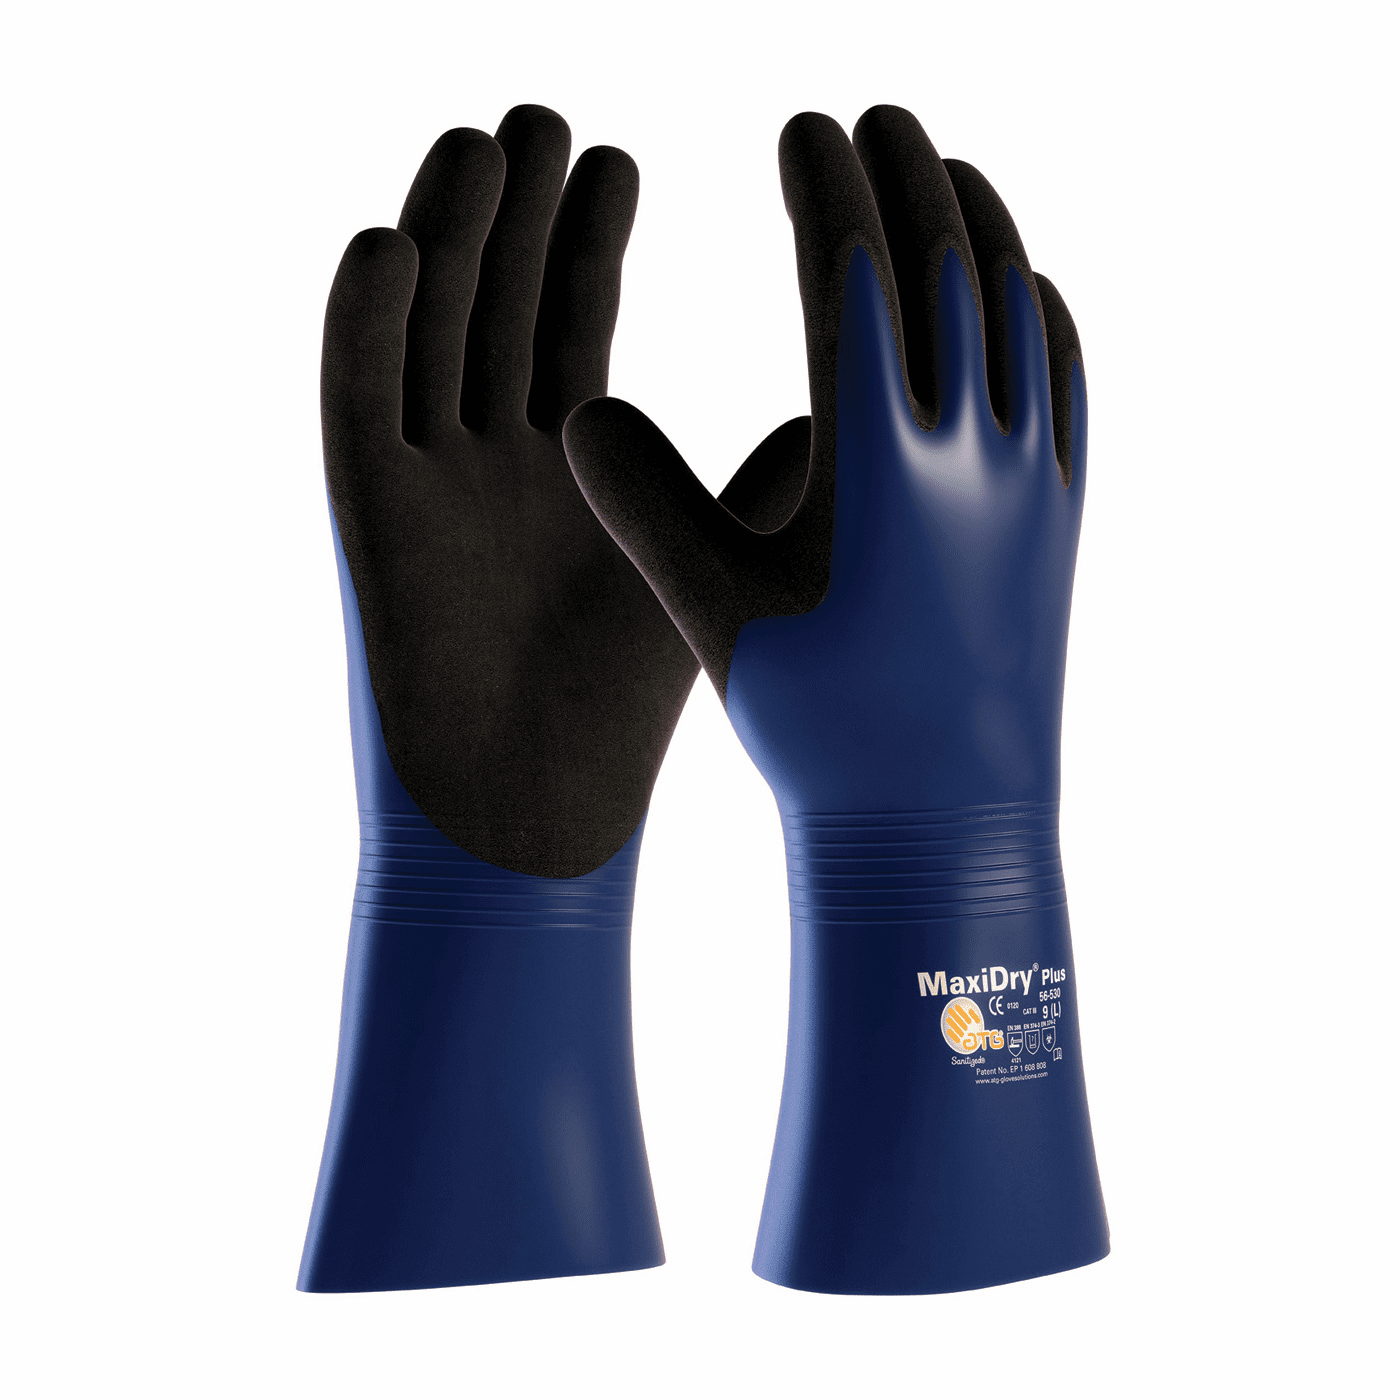 PIP, MaxiDry� Plus� Nitrile Coated Glove with Nylon / Lycra Liner and Non-Slip Grip on Palm & Fingers